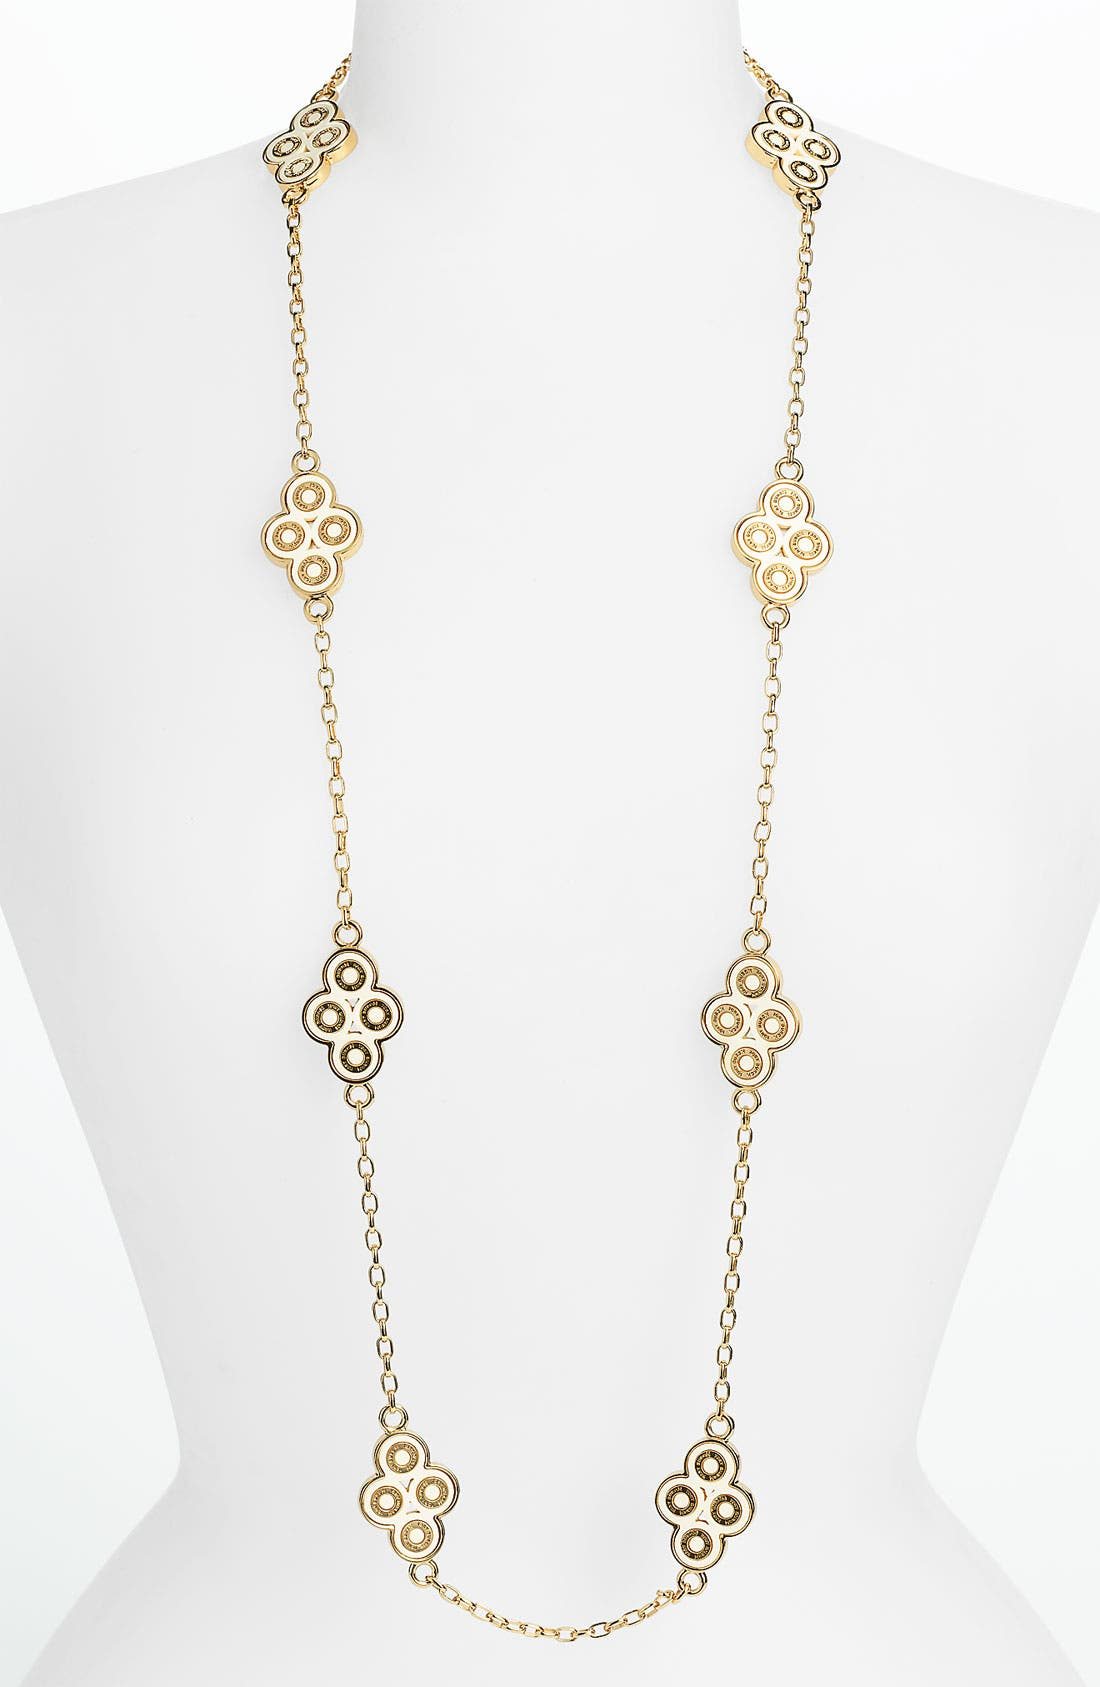 Main Image - Tory Burch 'Cole' Enamel Clover Necklace